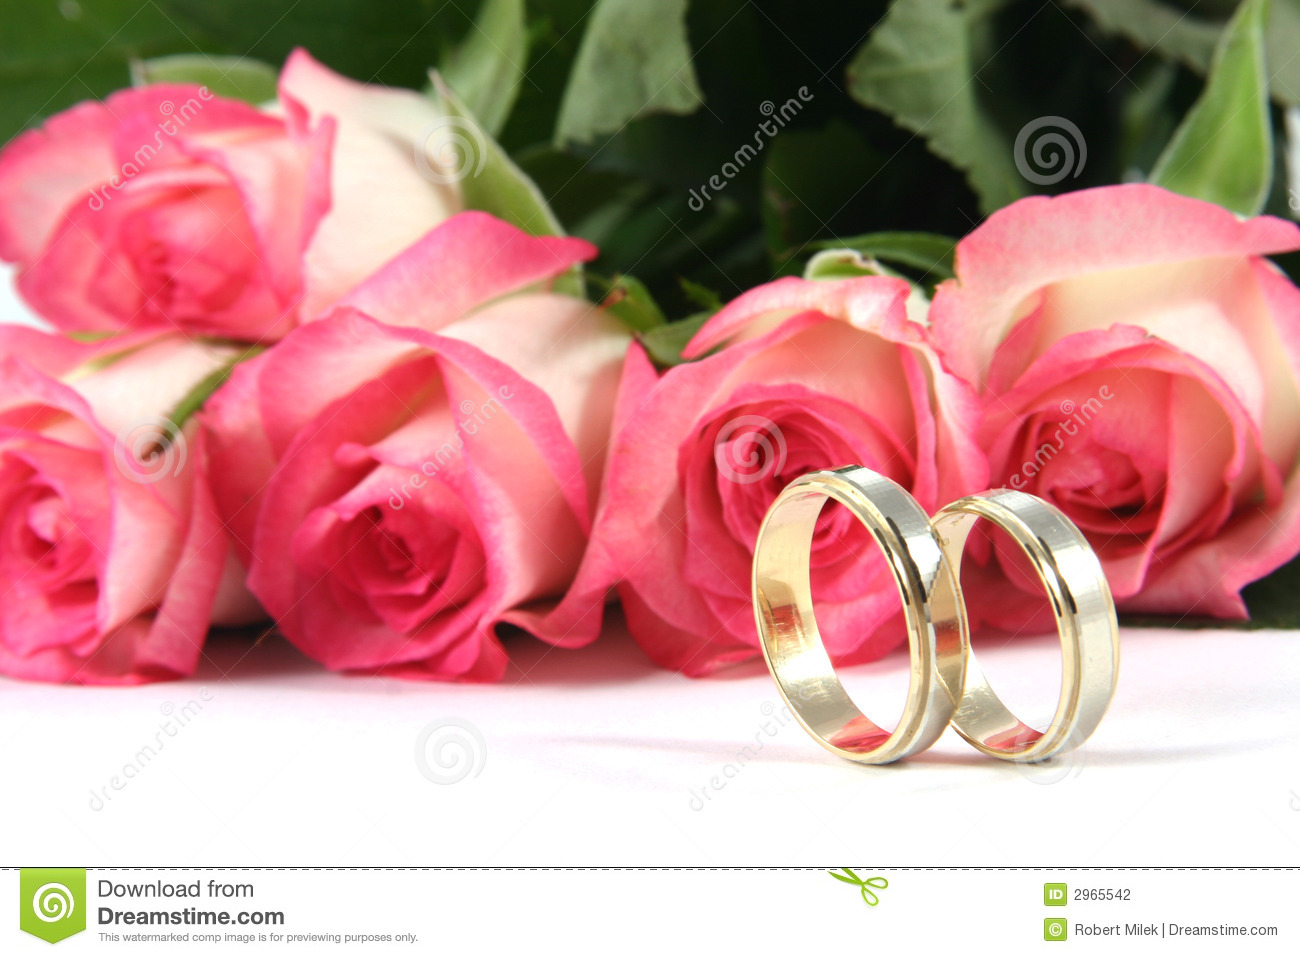 new cheap wedding rings: Wedding rings and roses images